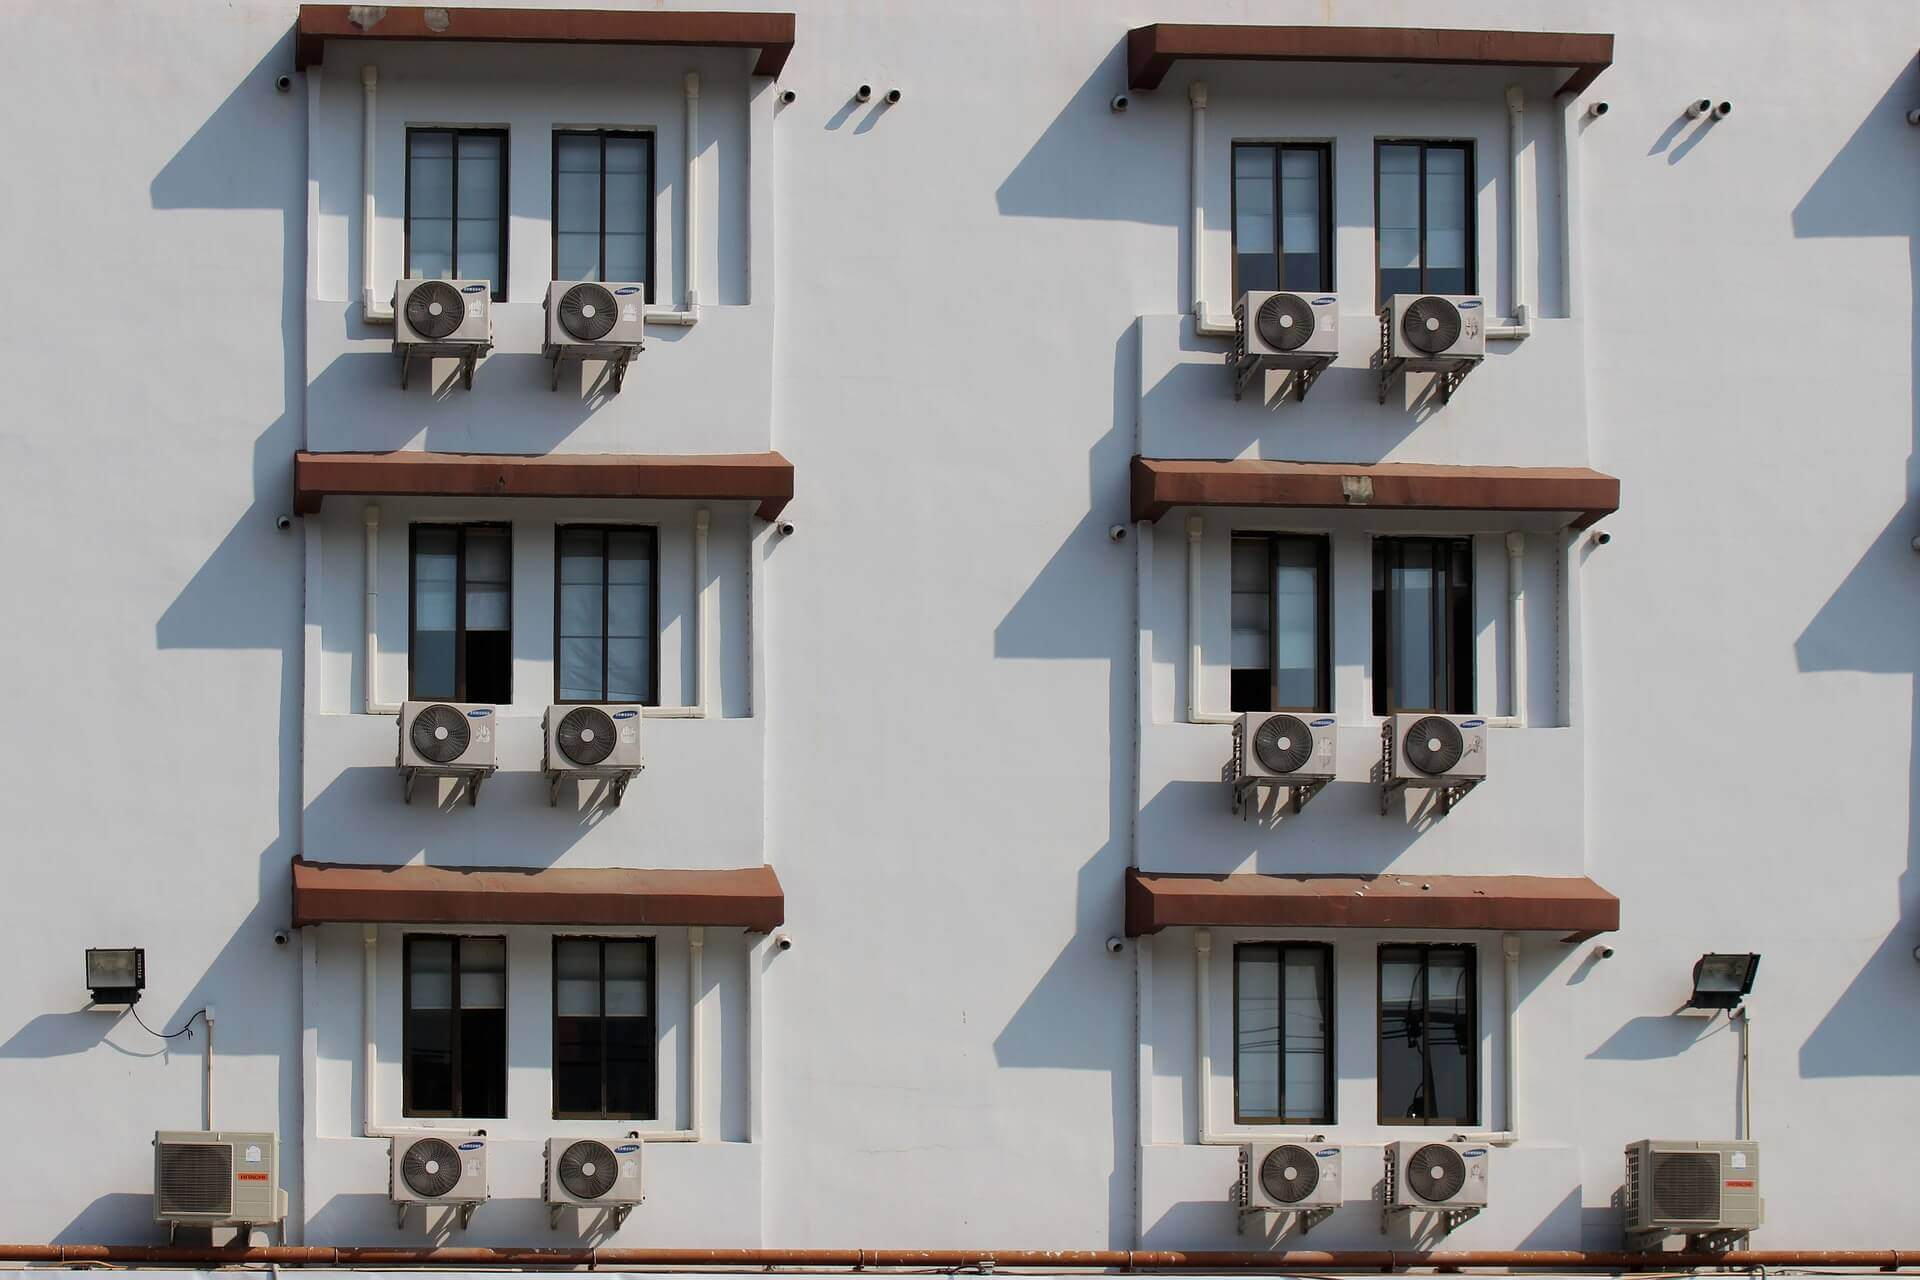 How air conditioning works in an apartment, car or mobile 67